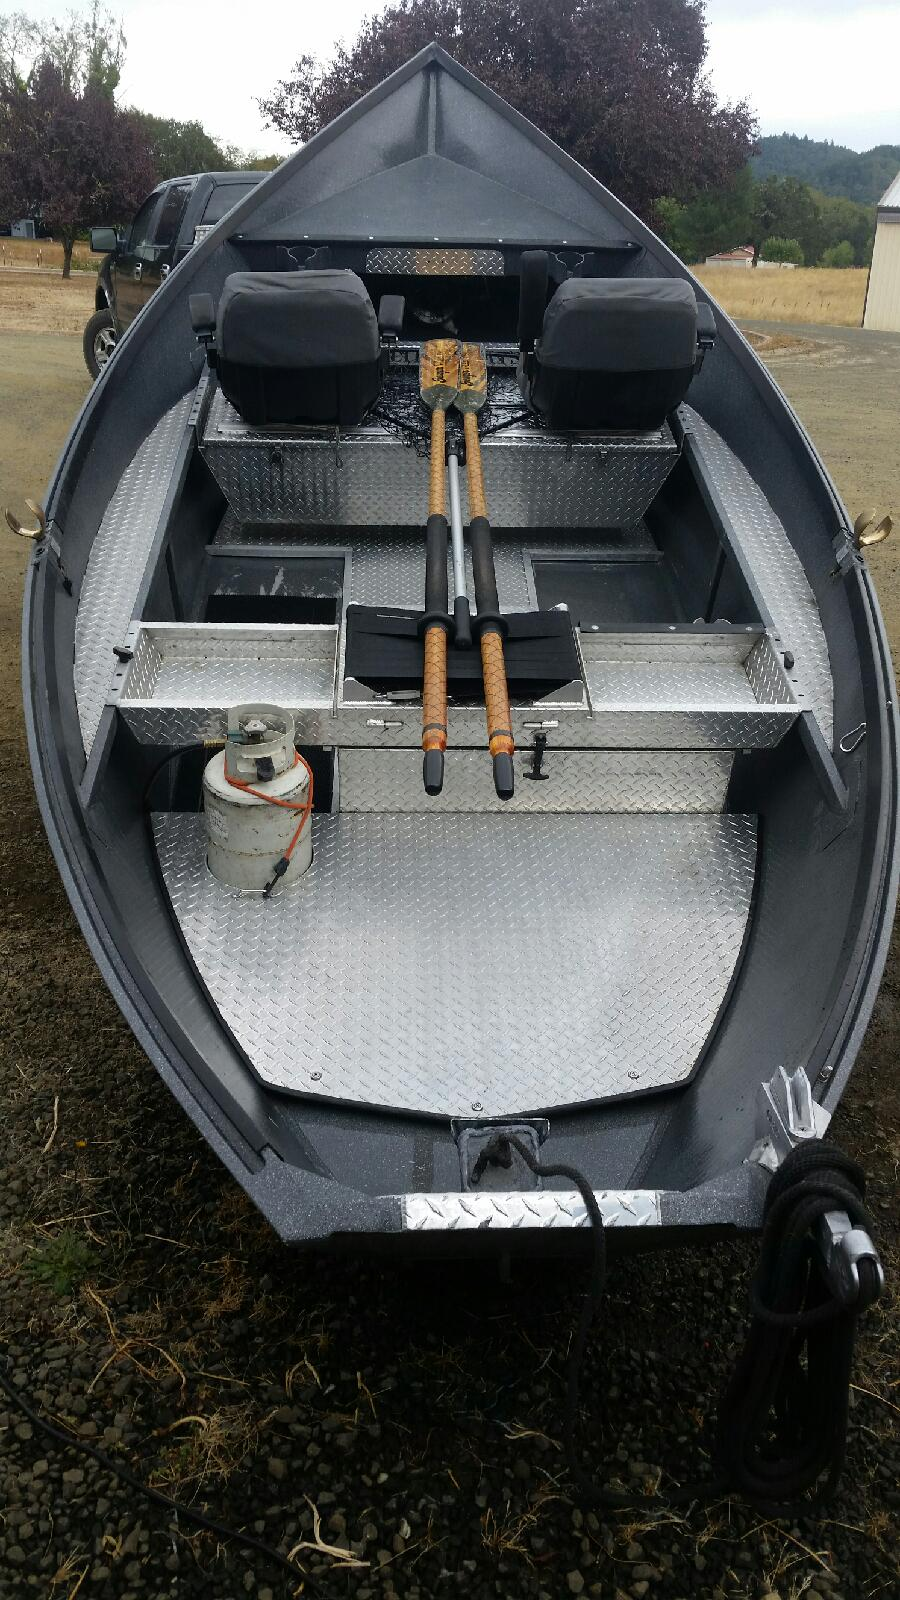 Willie Boats For Sale >> 2014- 18 x 60 Willie Boat Drift Boat $9,800.00 - Willie Boats